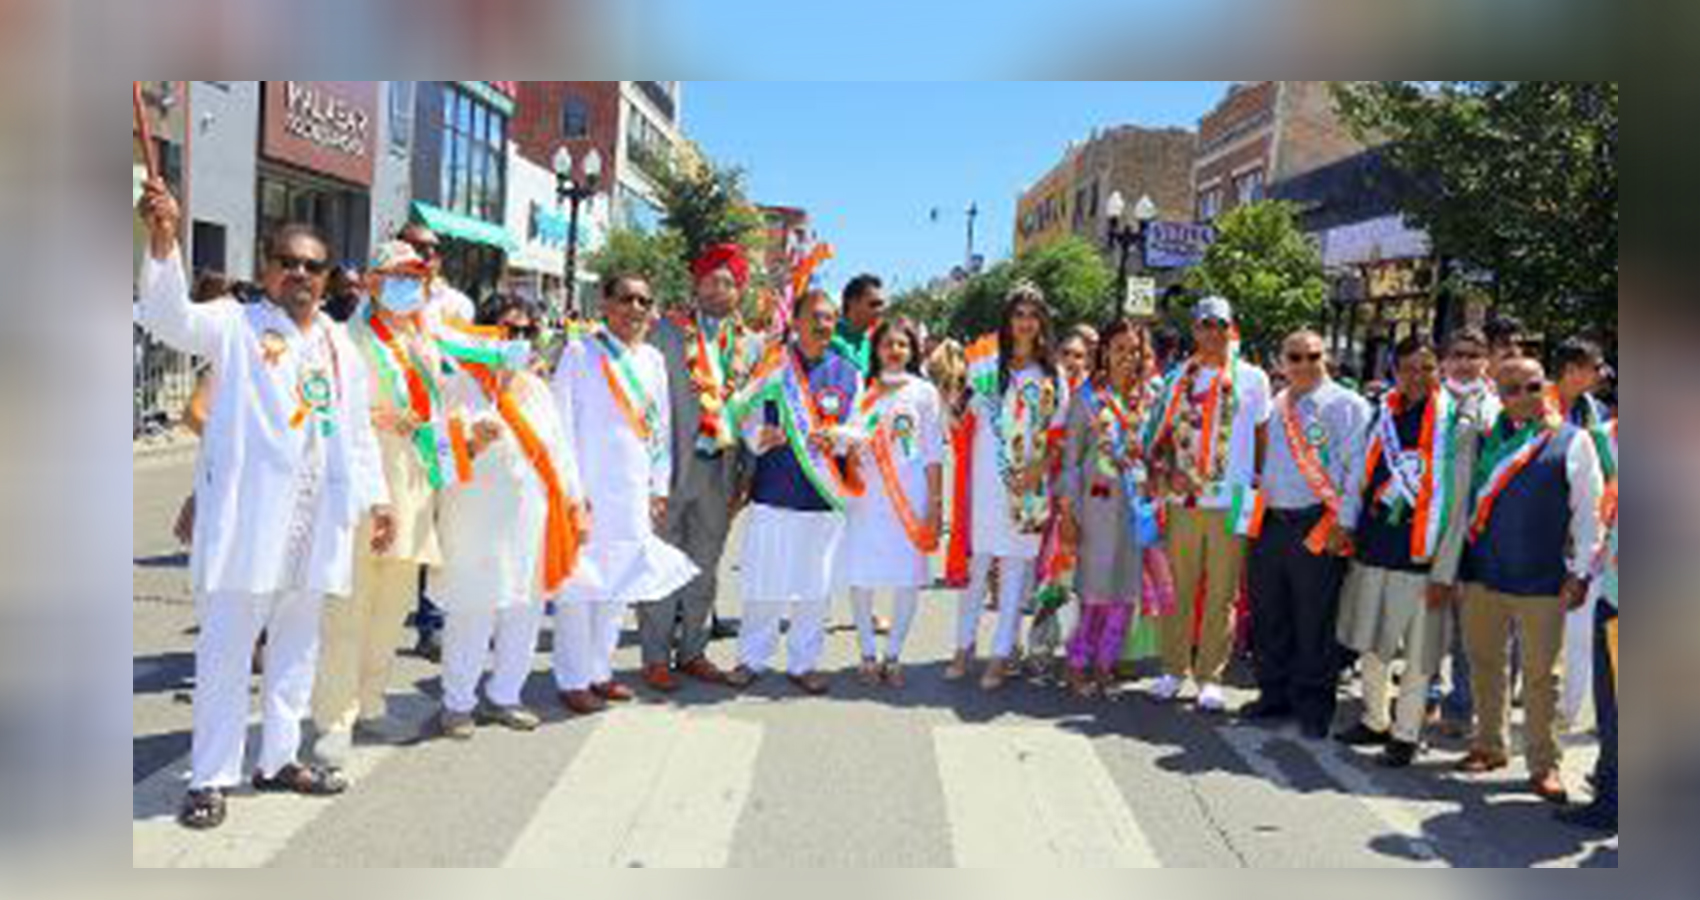 India Independence Day Parade Adds Glitters To 'Little India' Devon Avenue